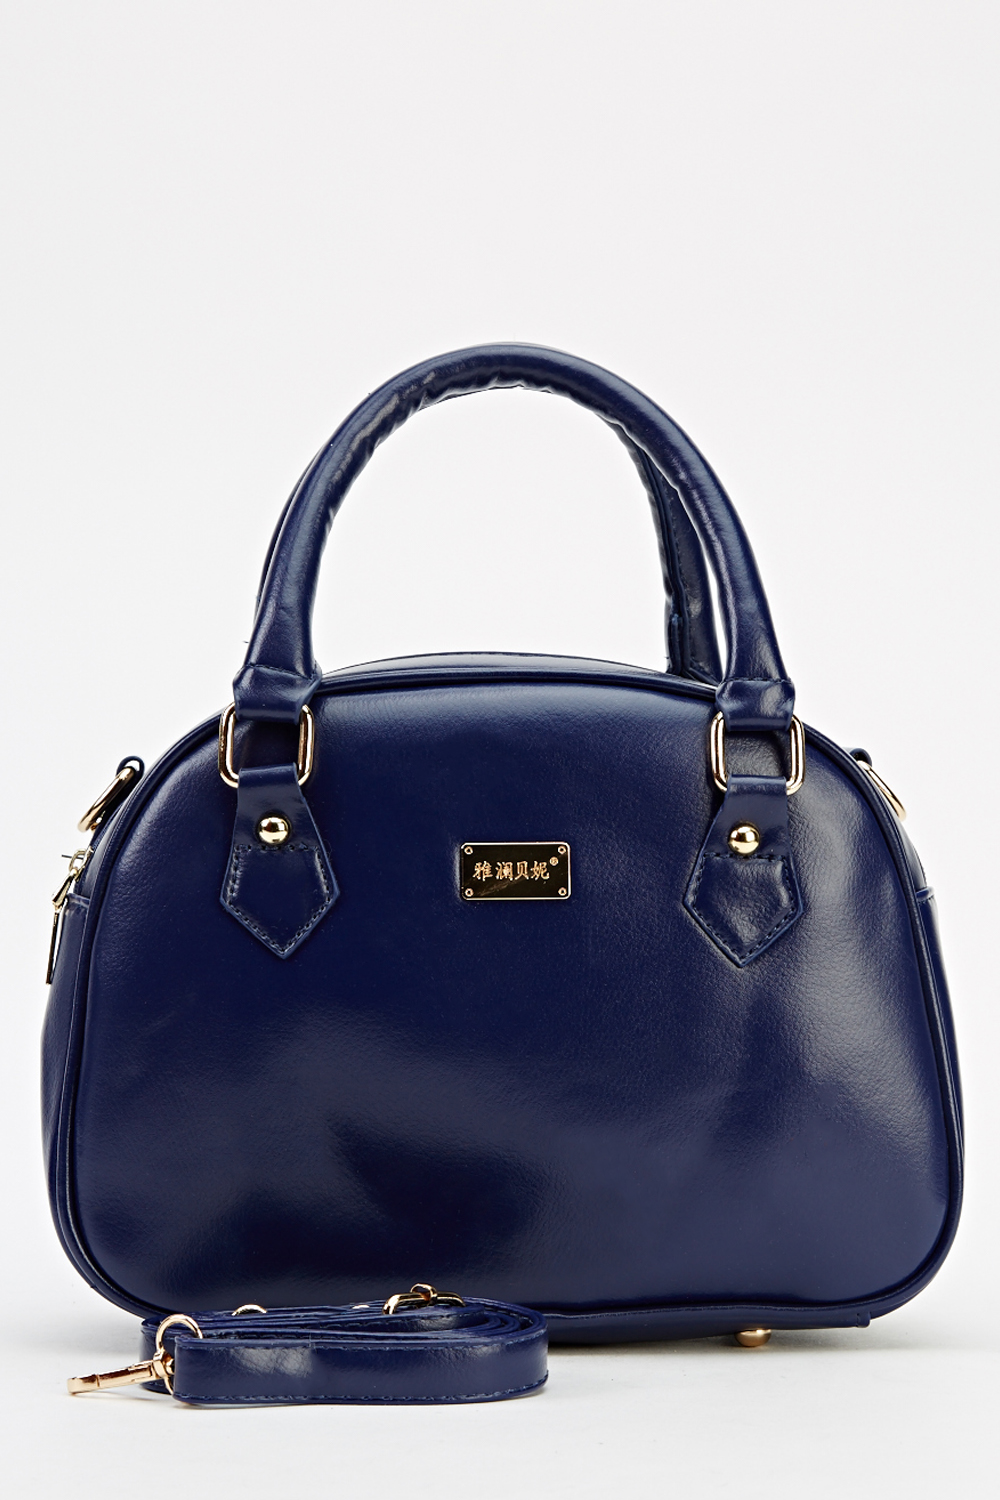 Small Faux Leather Navy Handbag Just 163 5